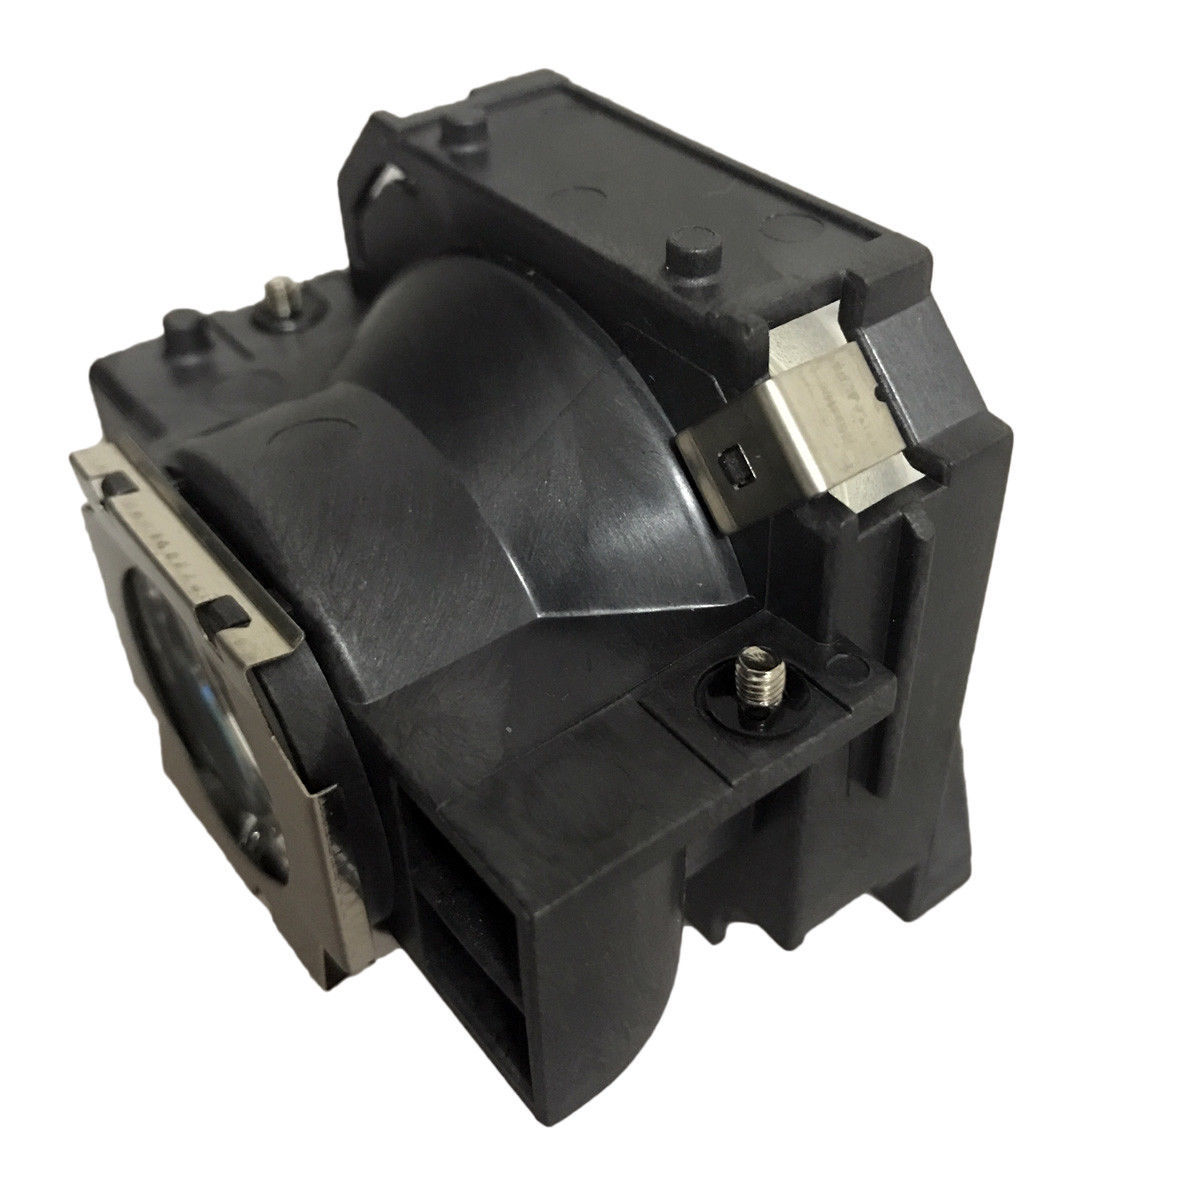 Replacement Projector Lamp for Epson ELPLP32/ V13H010L32, PowerLite 760c/ 765c